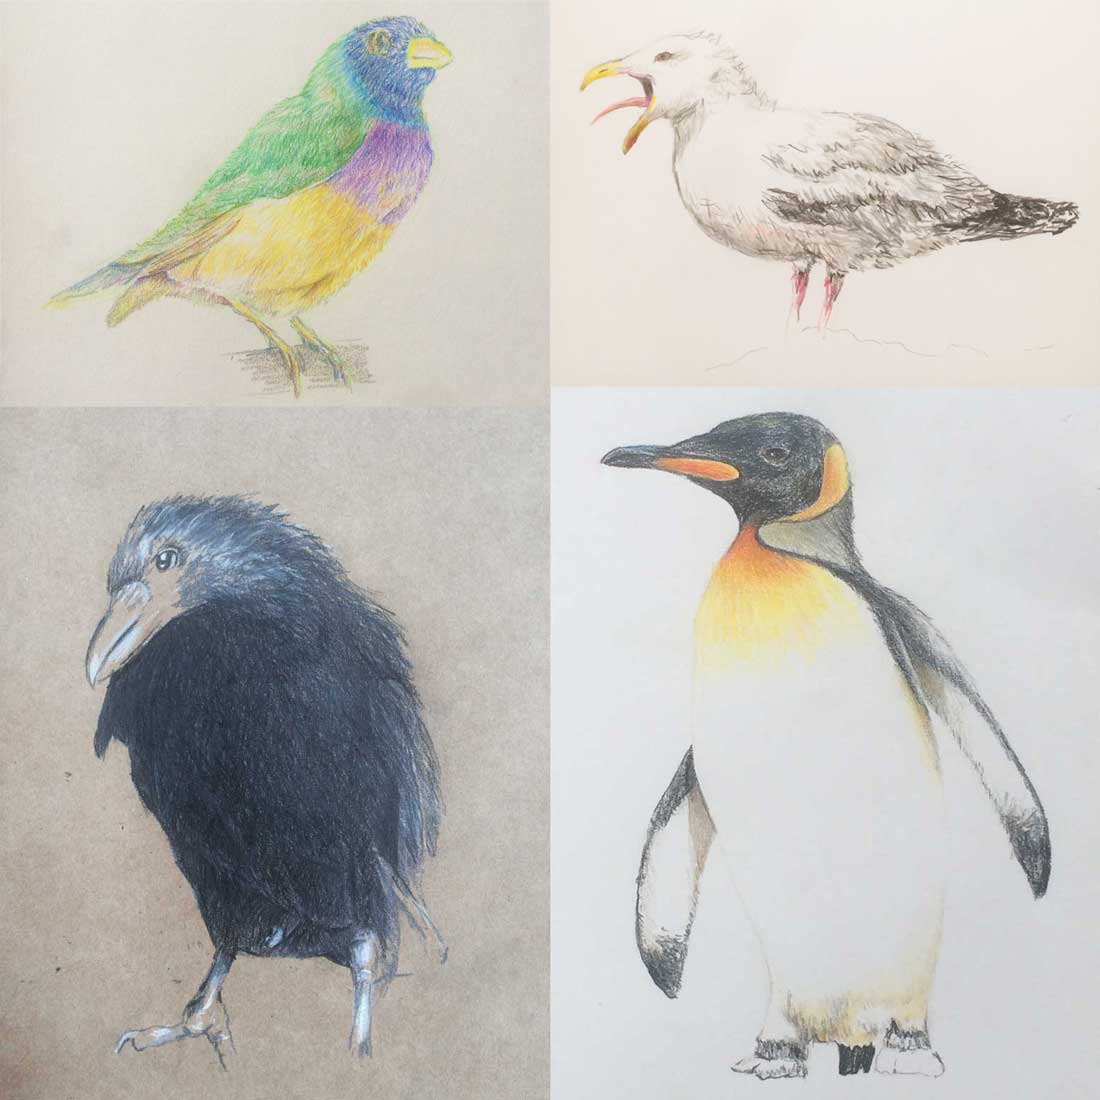 four drawings: a finch; a seagull; a crow; and a penguin